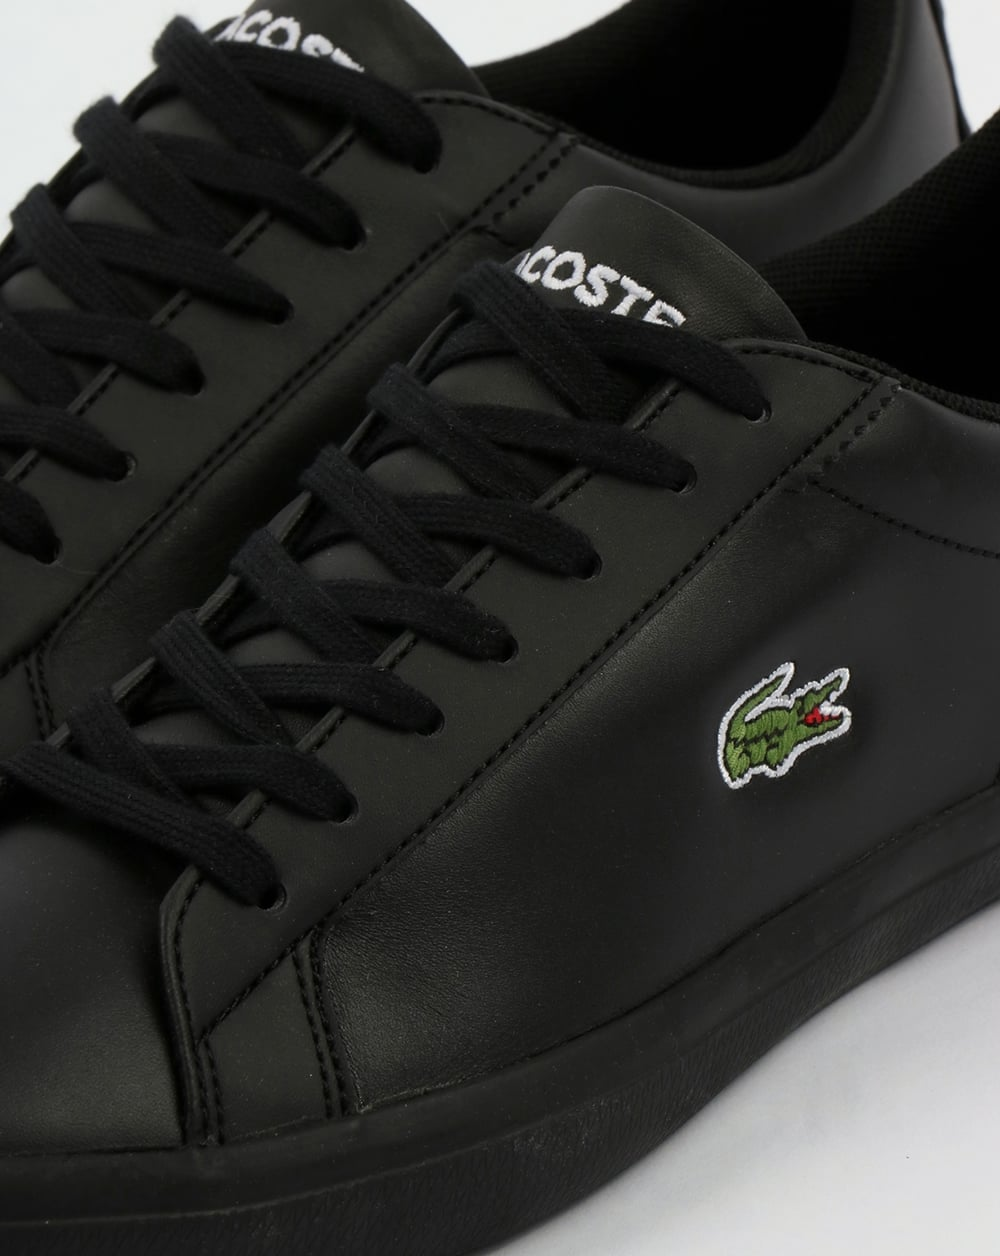 free shipping 8f96e 48498 Lacoste Footwear Lerond Trainers Black